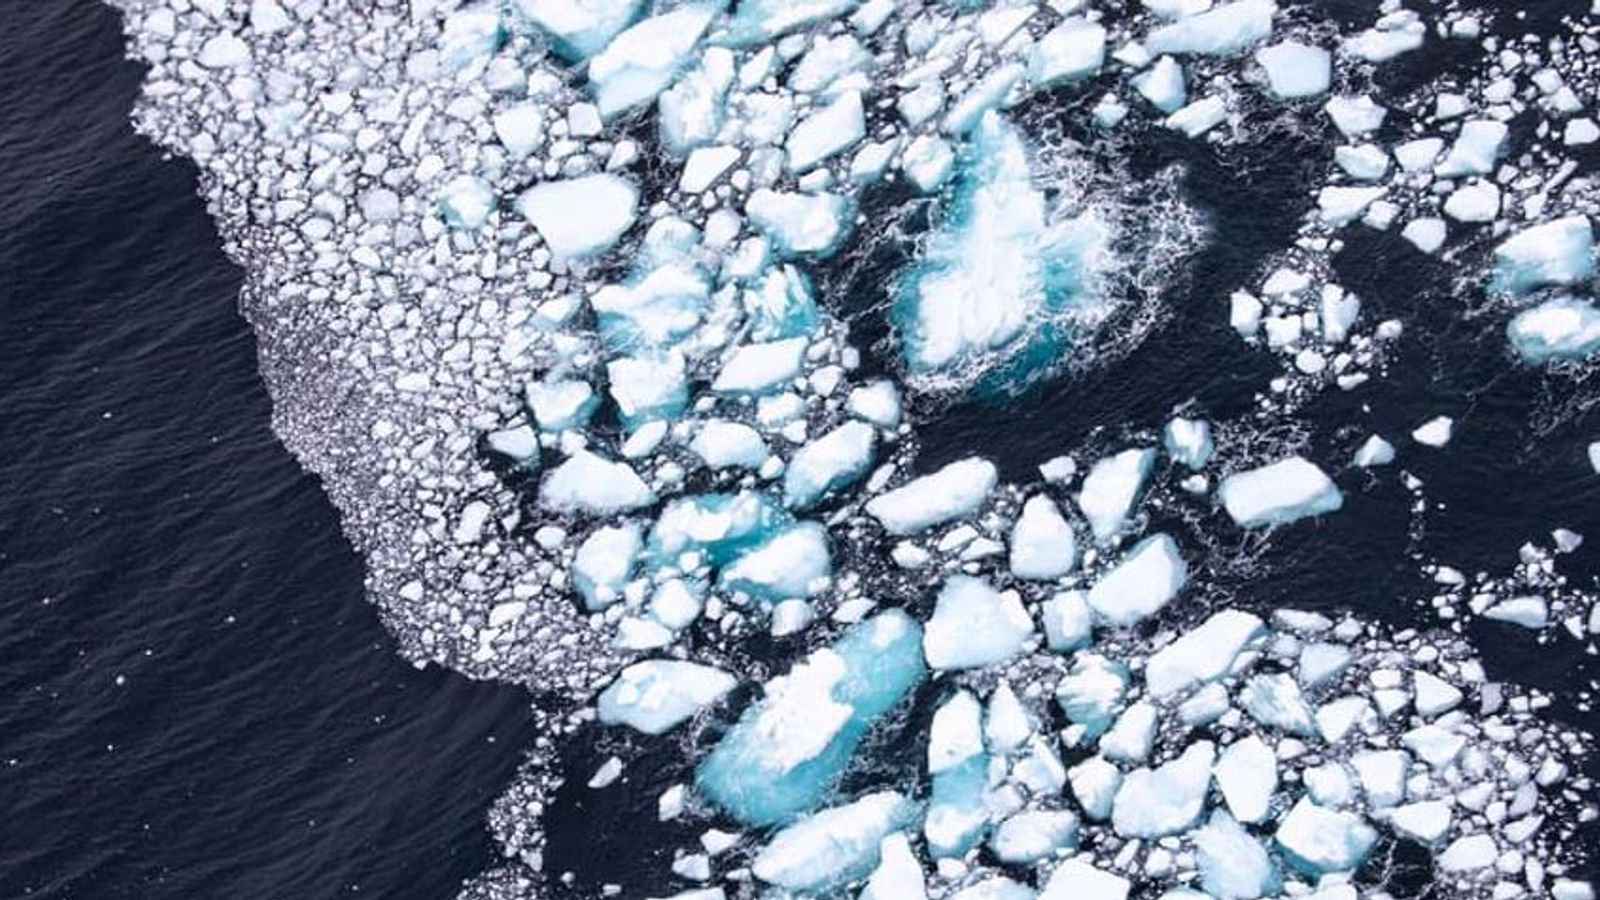 The famous iceberg A68 which was the largest in the world has finally melted